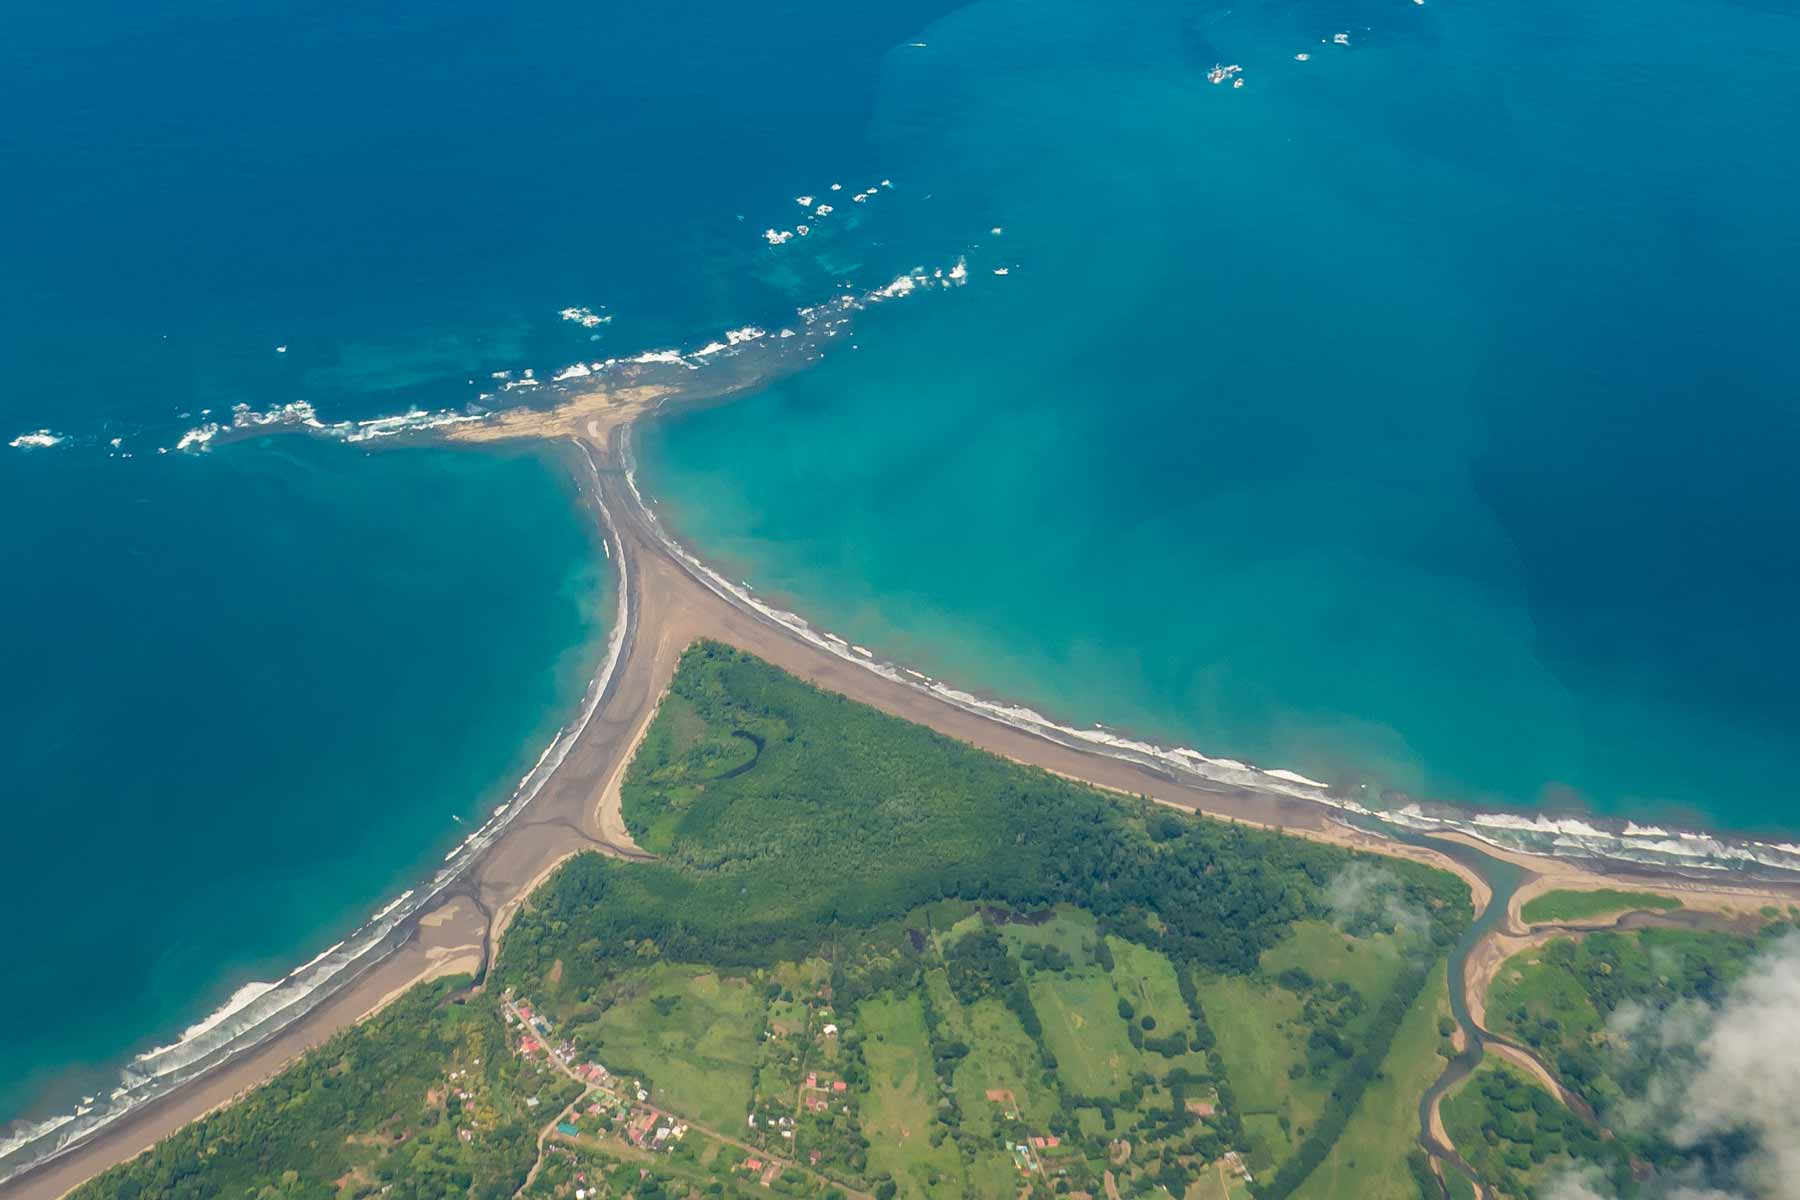 Aerial shot of the Whale's Tail in Marino Ballena National Park, Uvita, Costa Rica